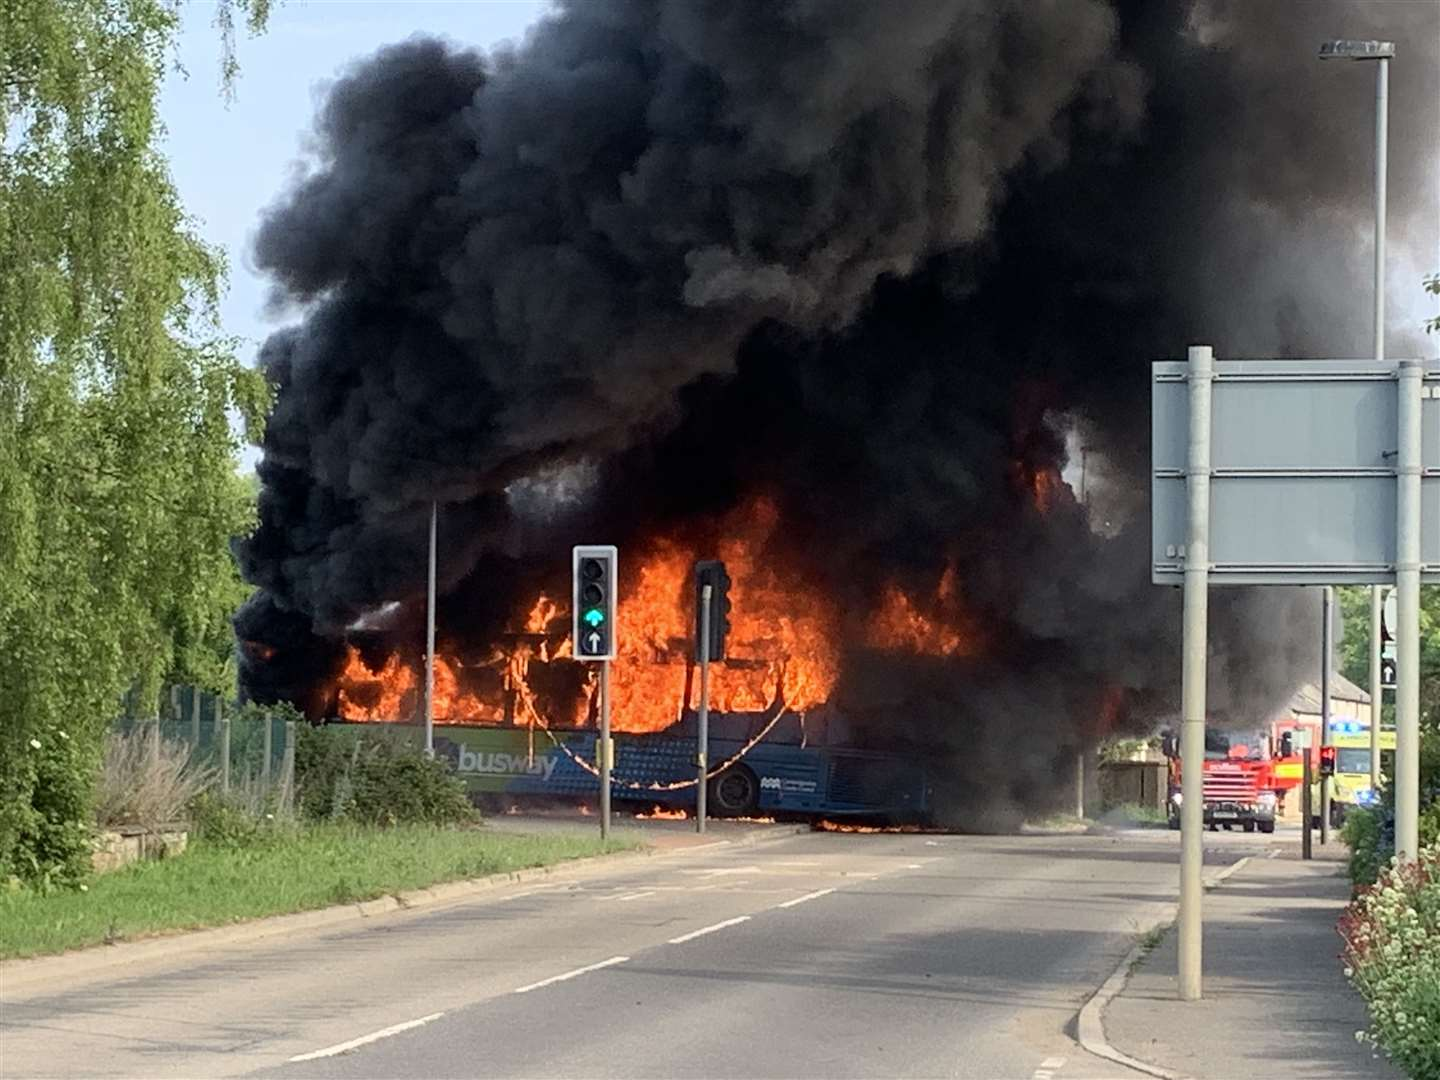 Plumes of smoke from the fire that destroyed a car and a bus on the guided busway. Pictures: Kyle Smithers (10725362)